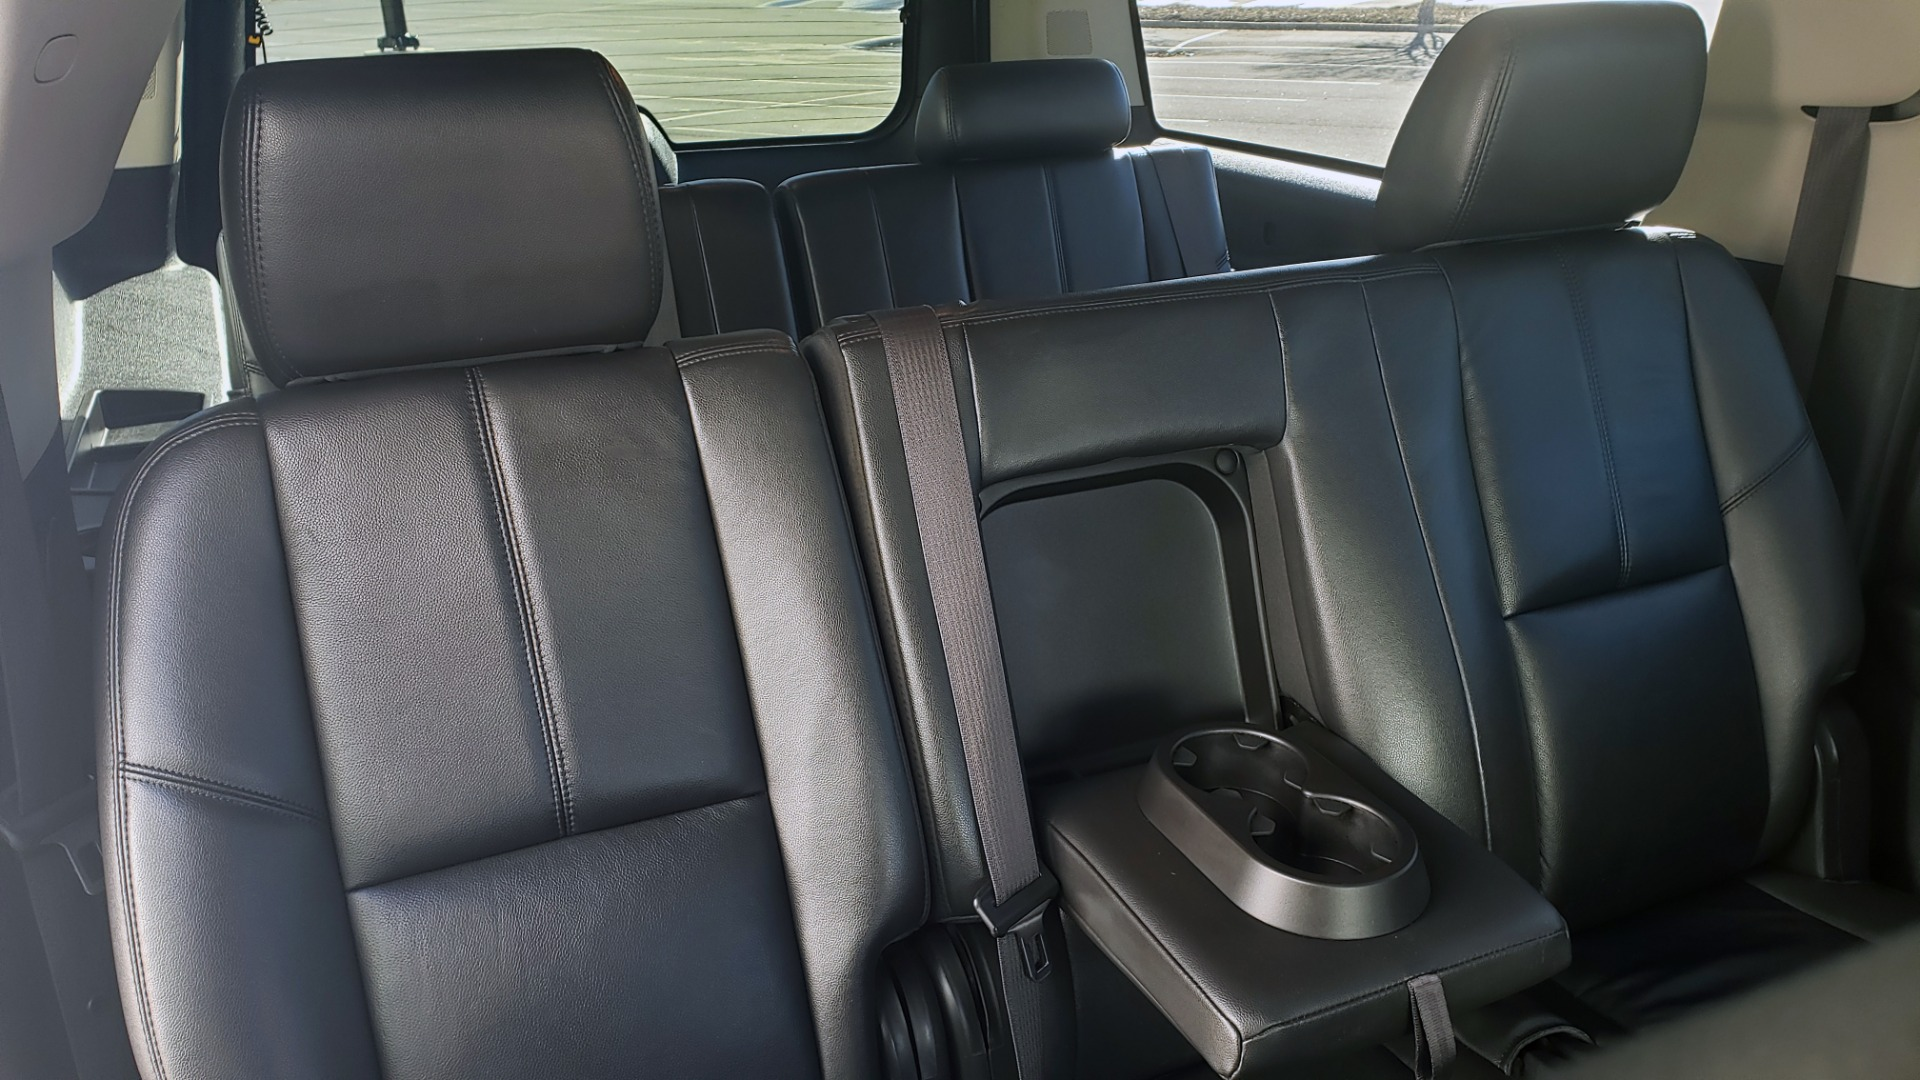 Used 2013 Chevrolet SUBURBAN LT / 2WD / 5.3L V8 / 6-SPD AUTO / LEATHER 3-ROW SEATS for sale Sold at Formula Imports in Charlotte NC 28227 67